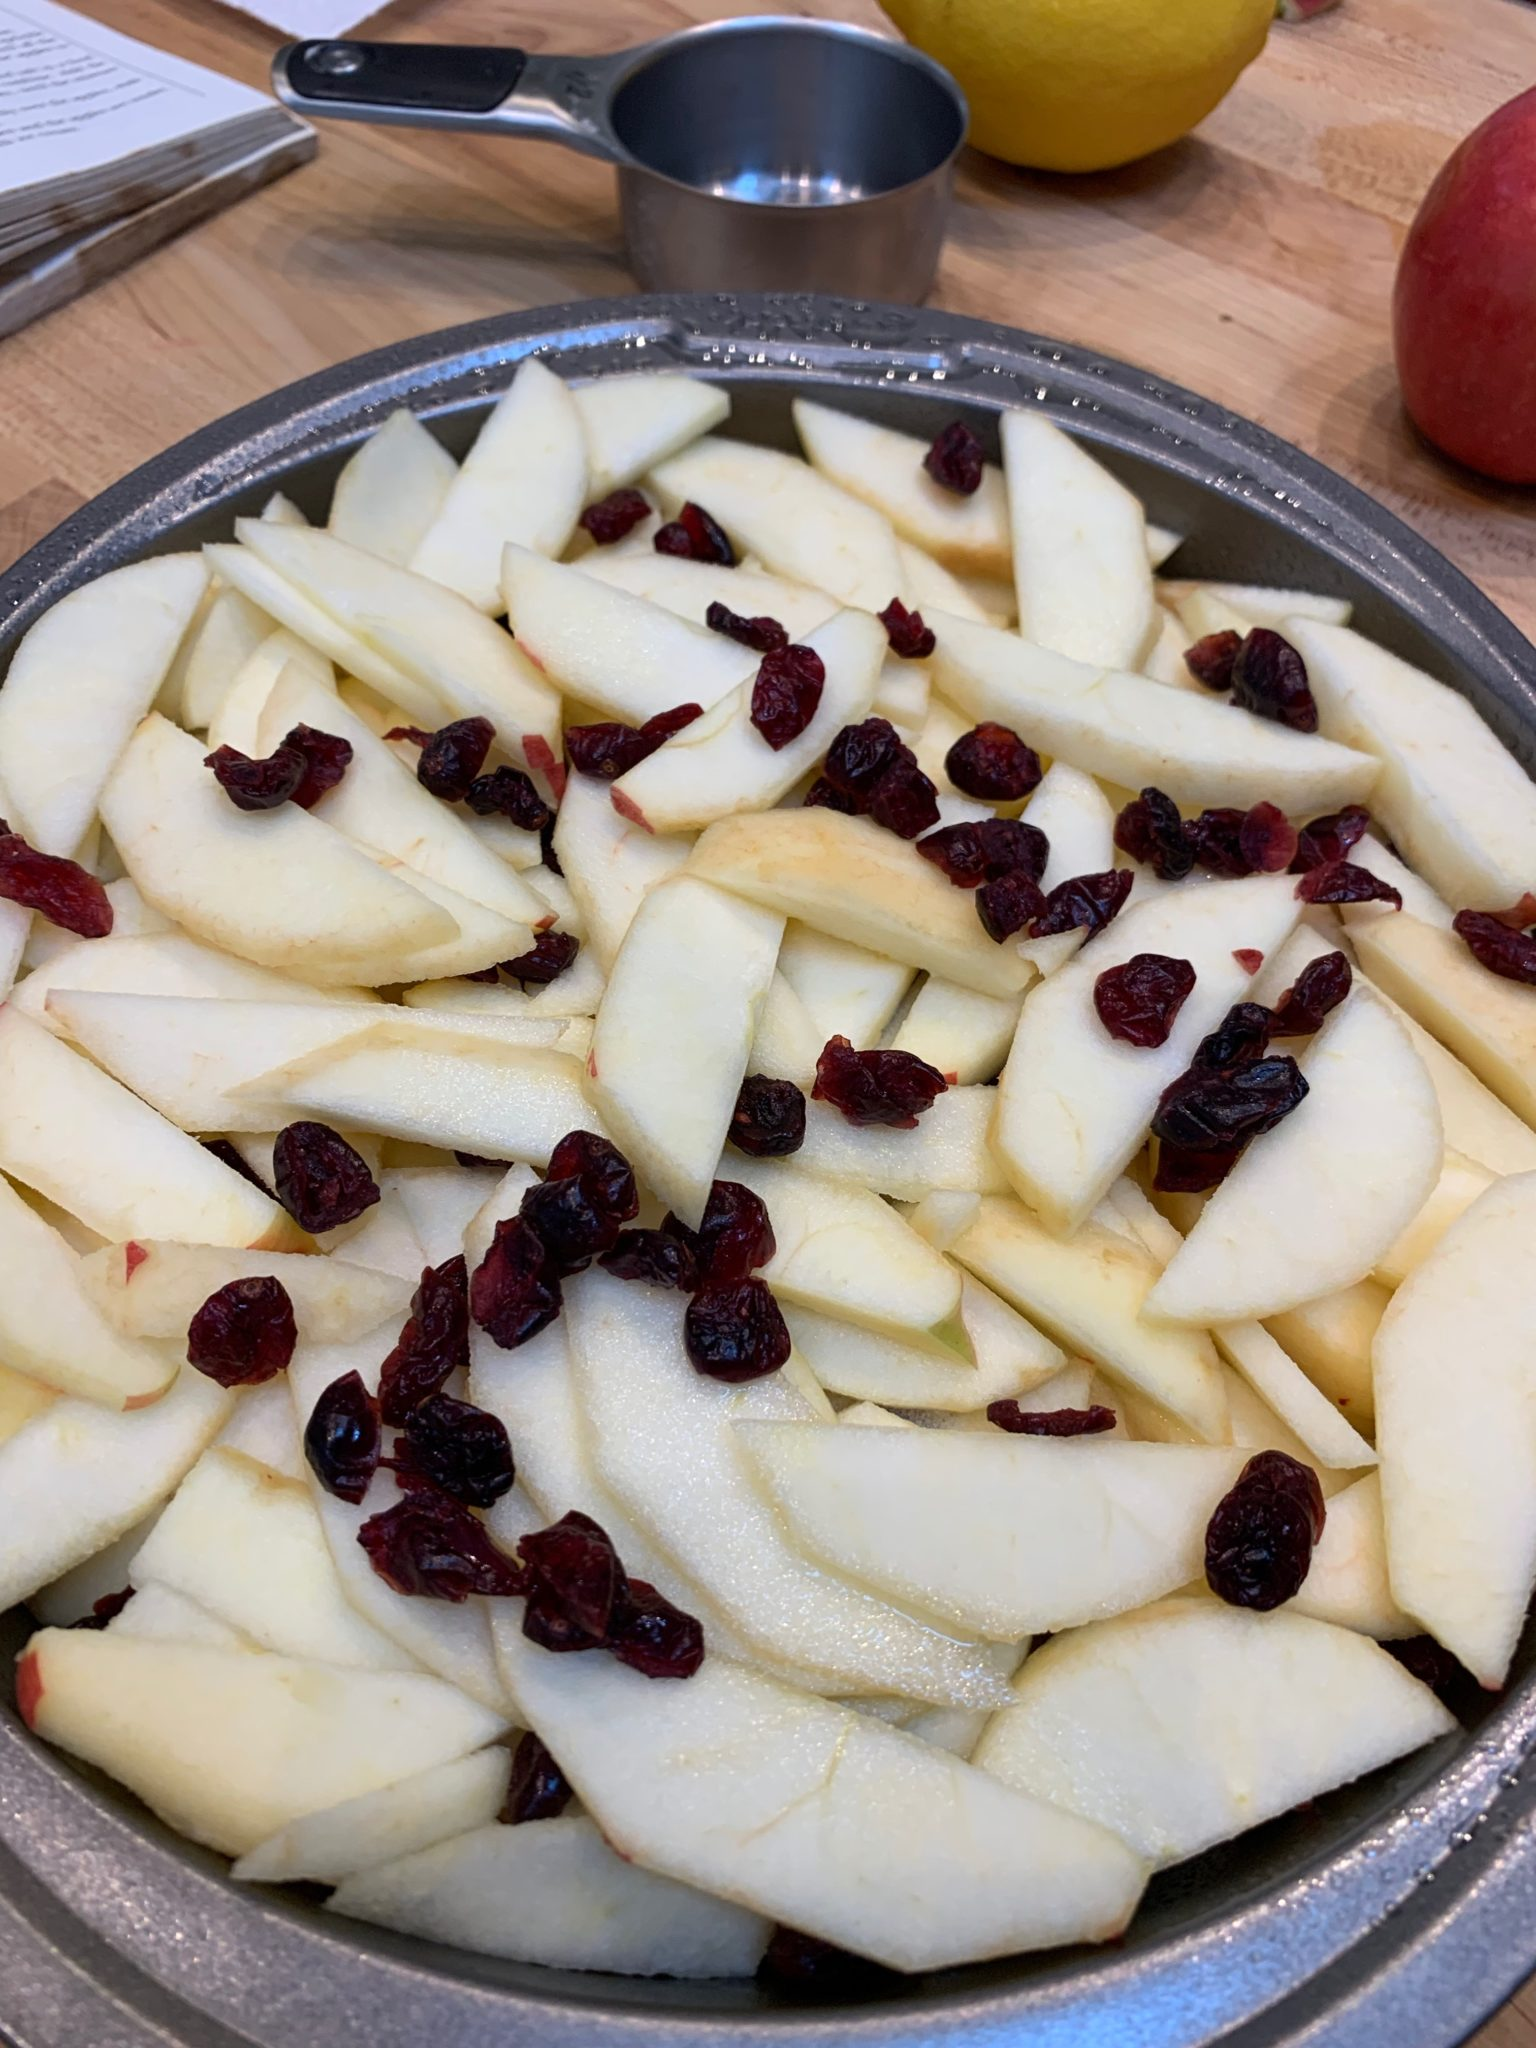 sliced apples and dried cranberries